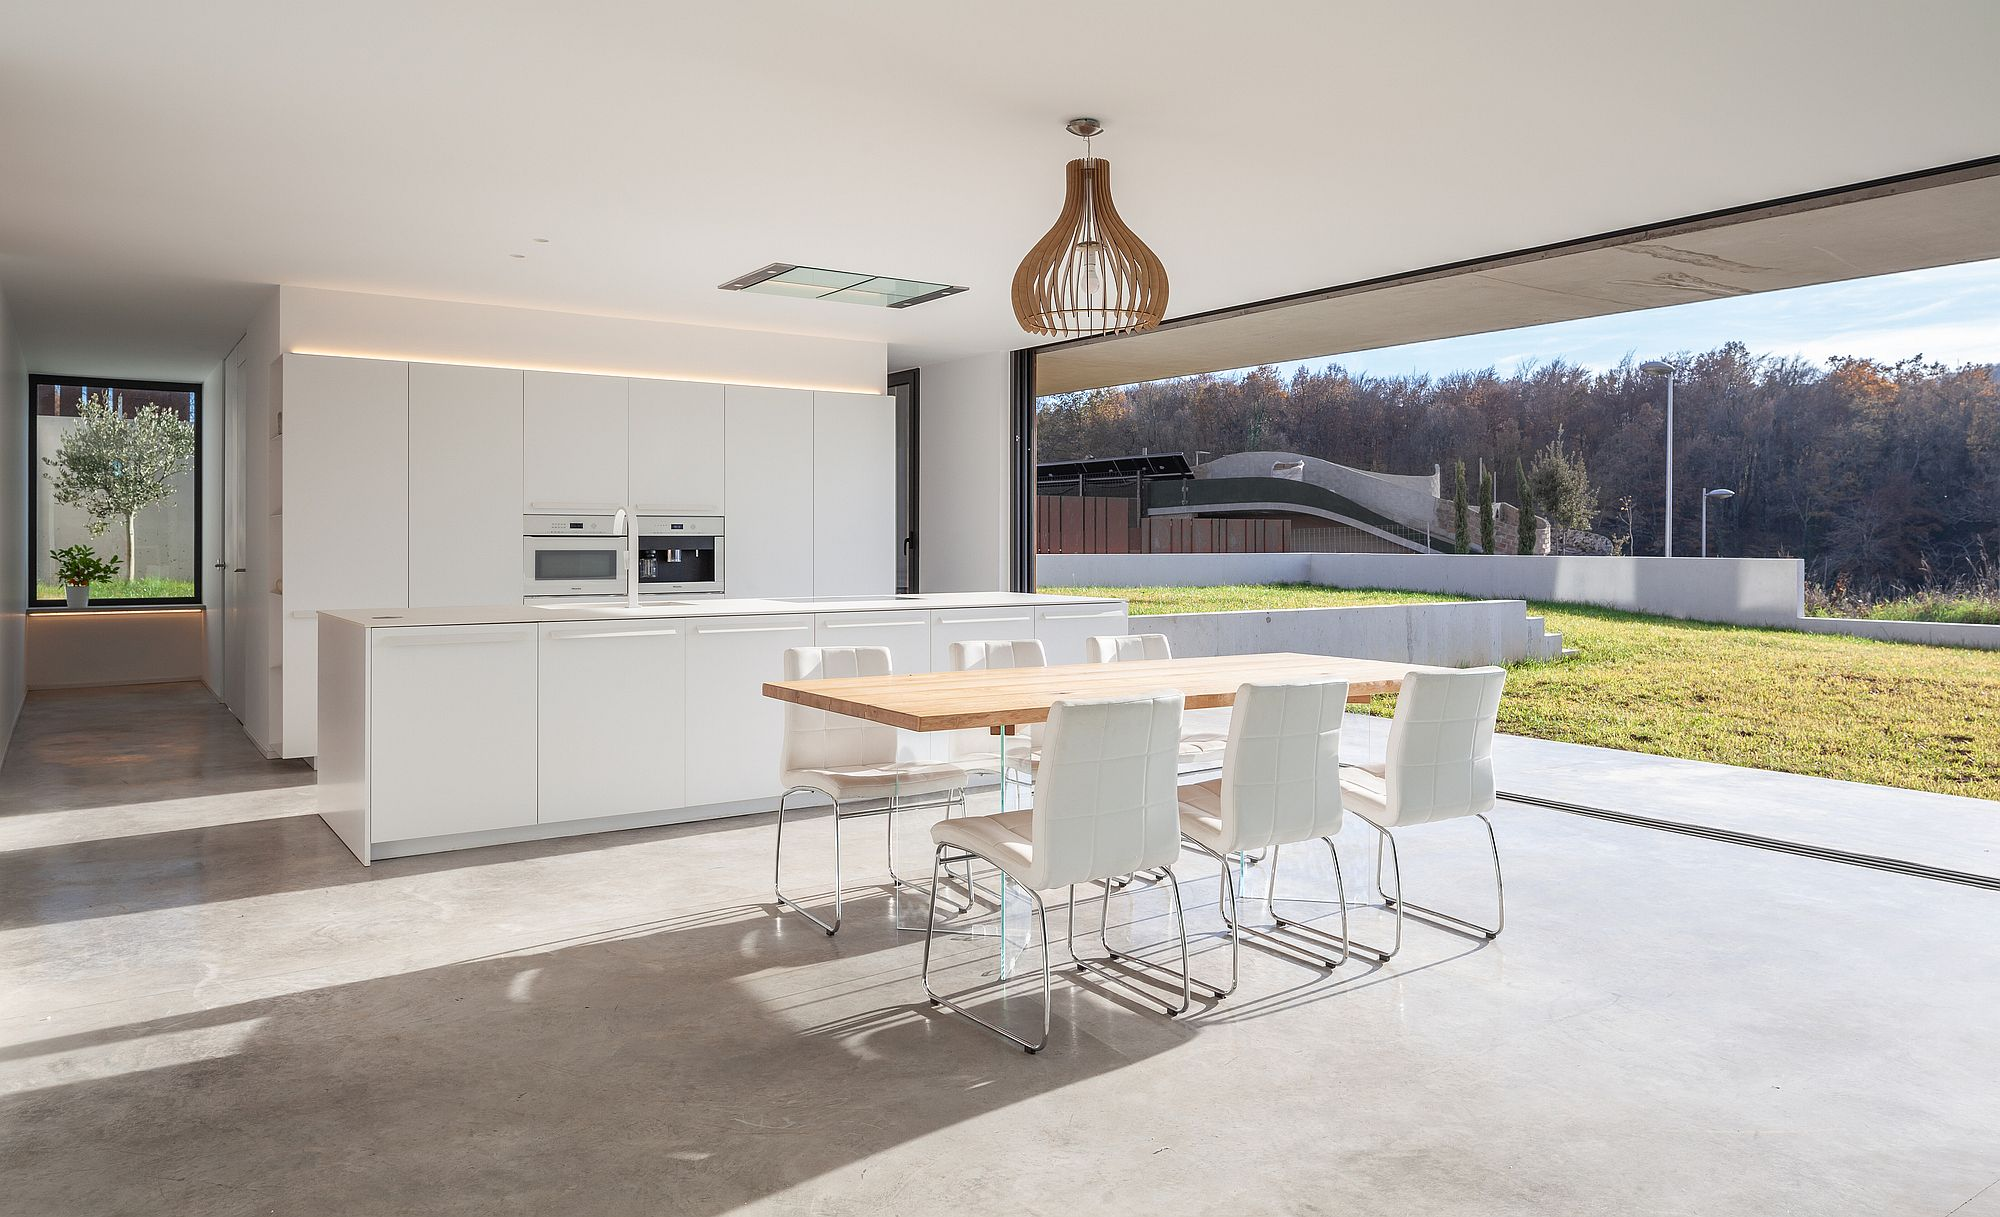 White and wood open kitchen design with concrete floor